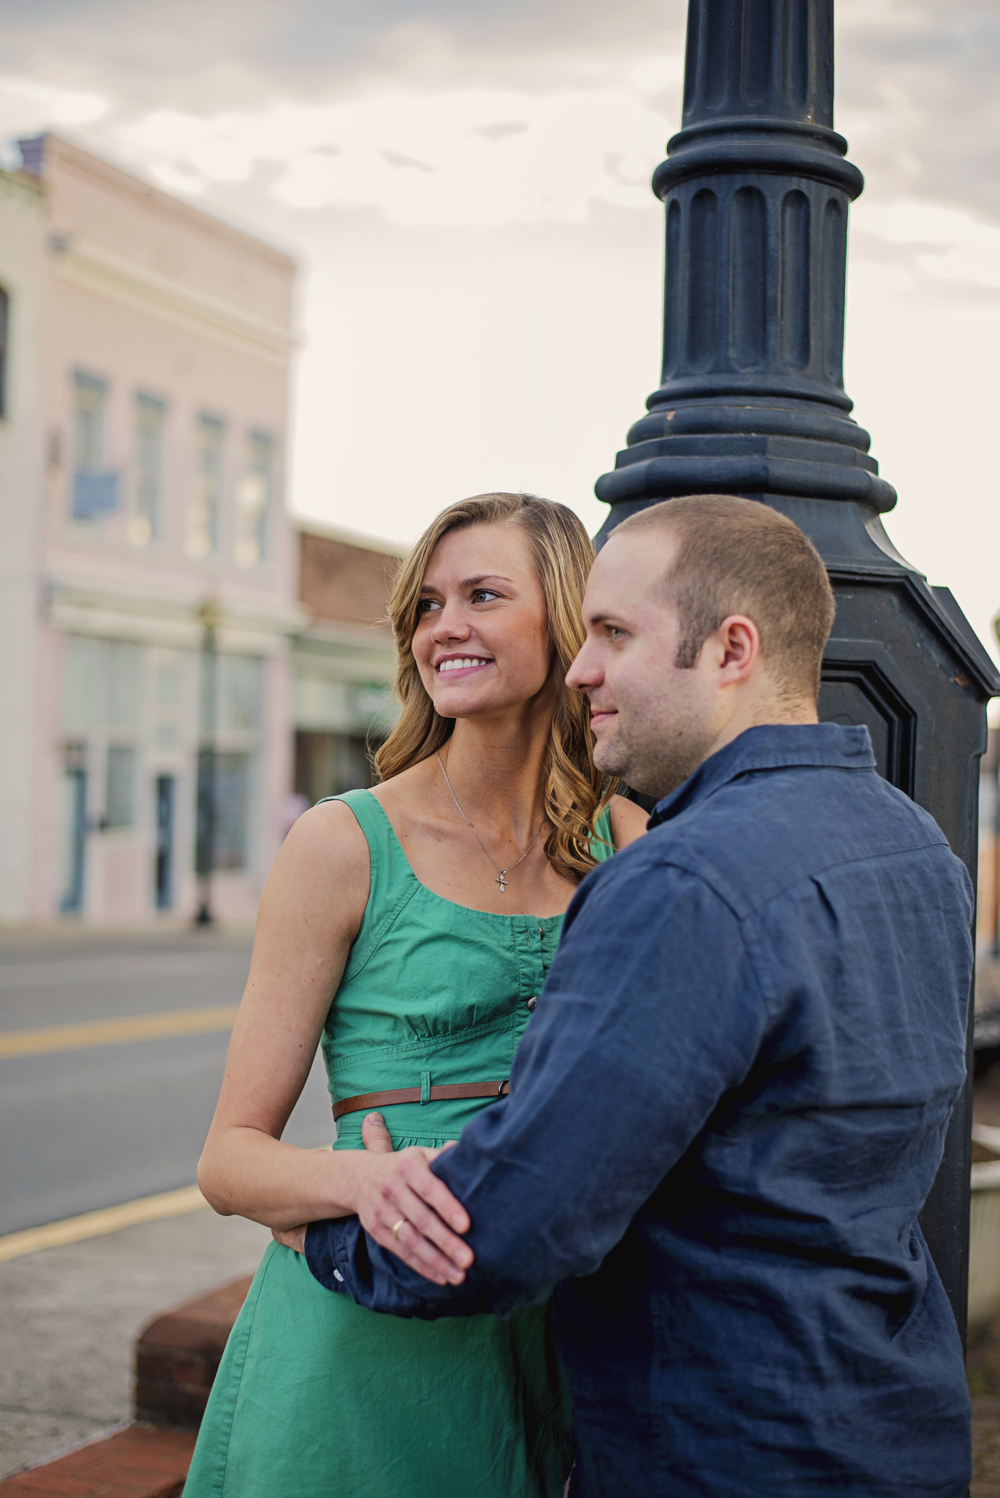 bedford_home_engagement_session_lifestyle_small_town_lynchburg_va021.jpg